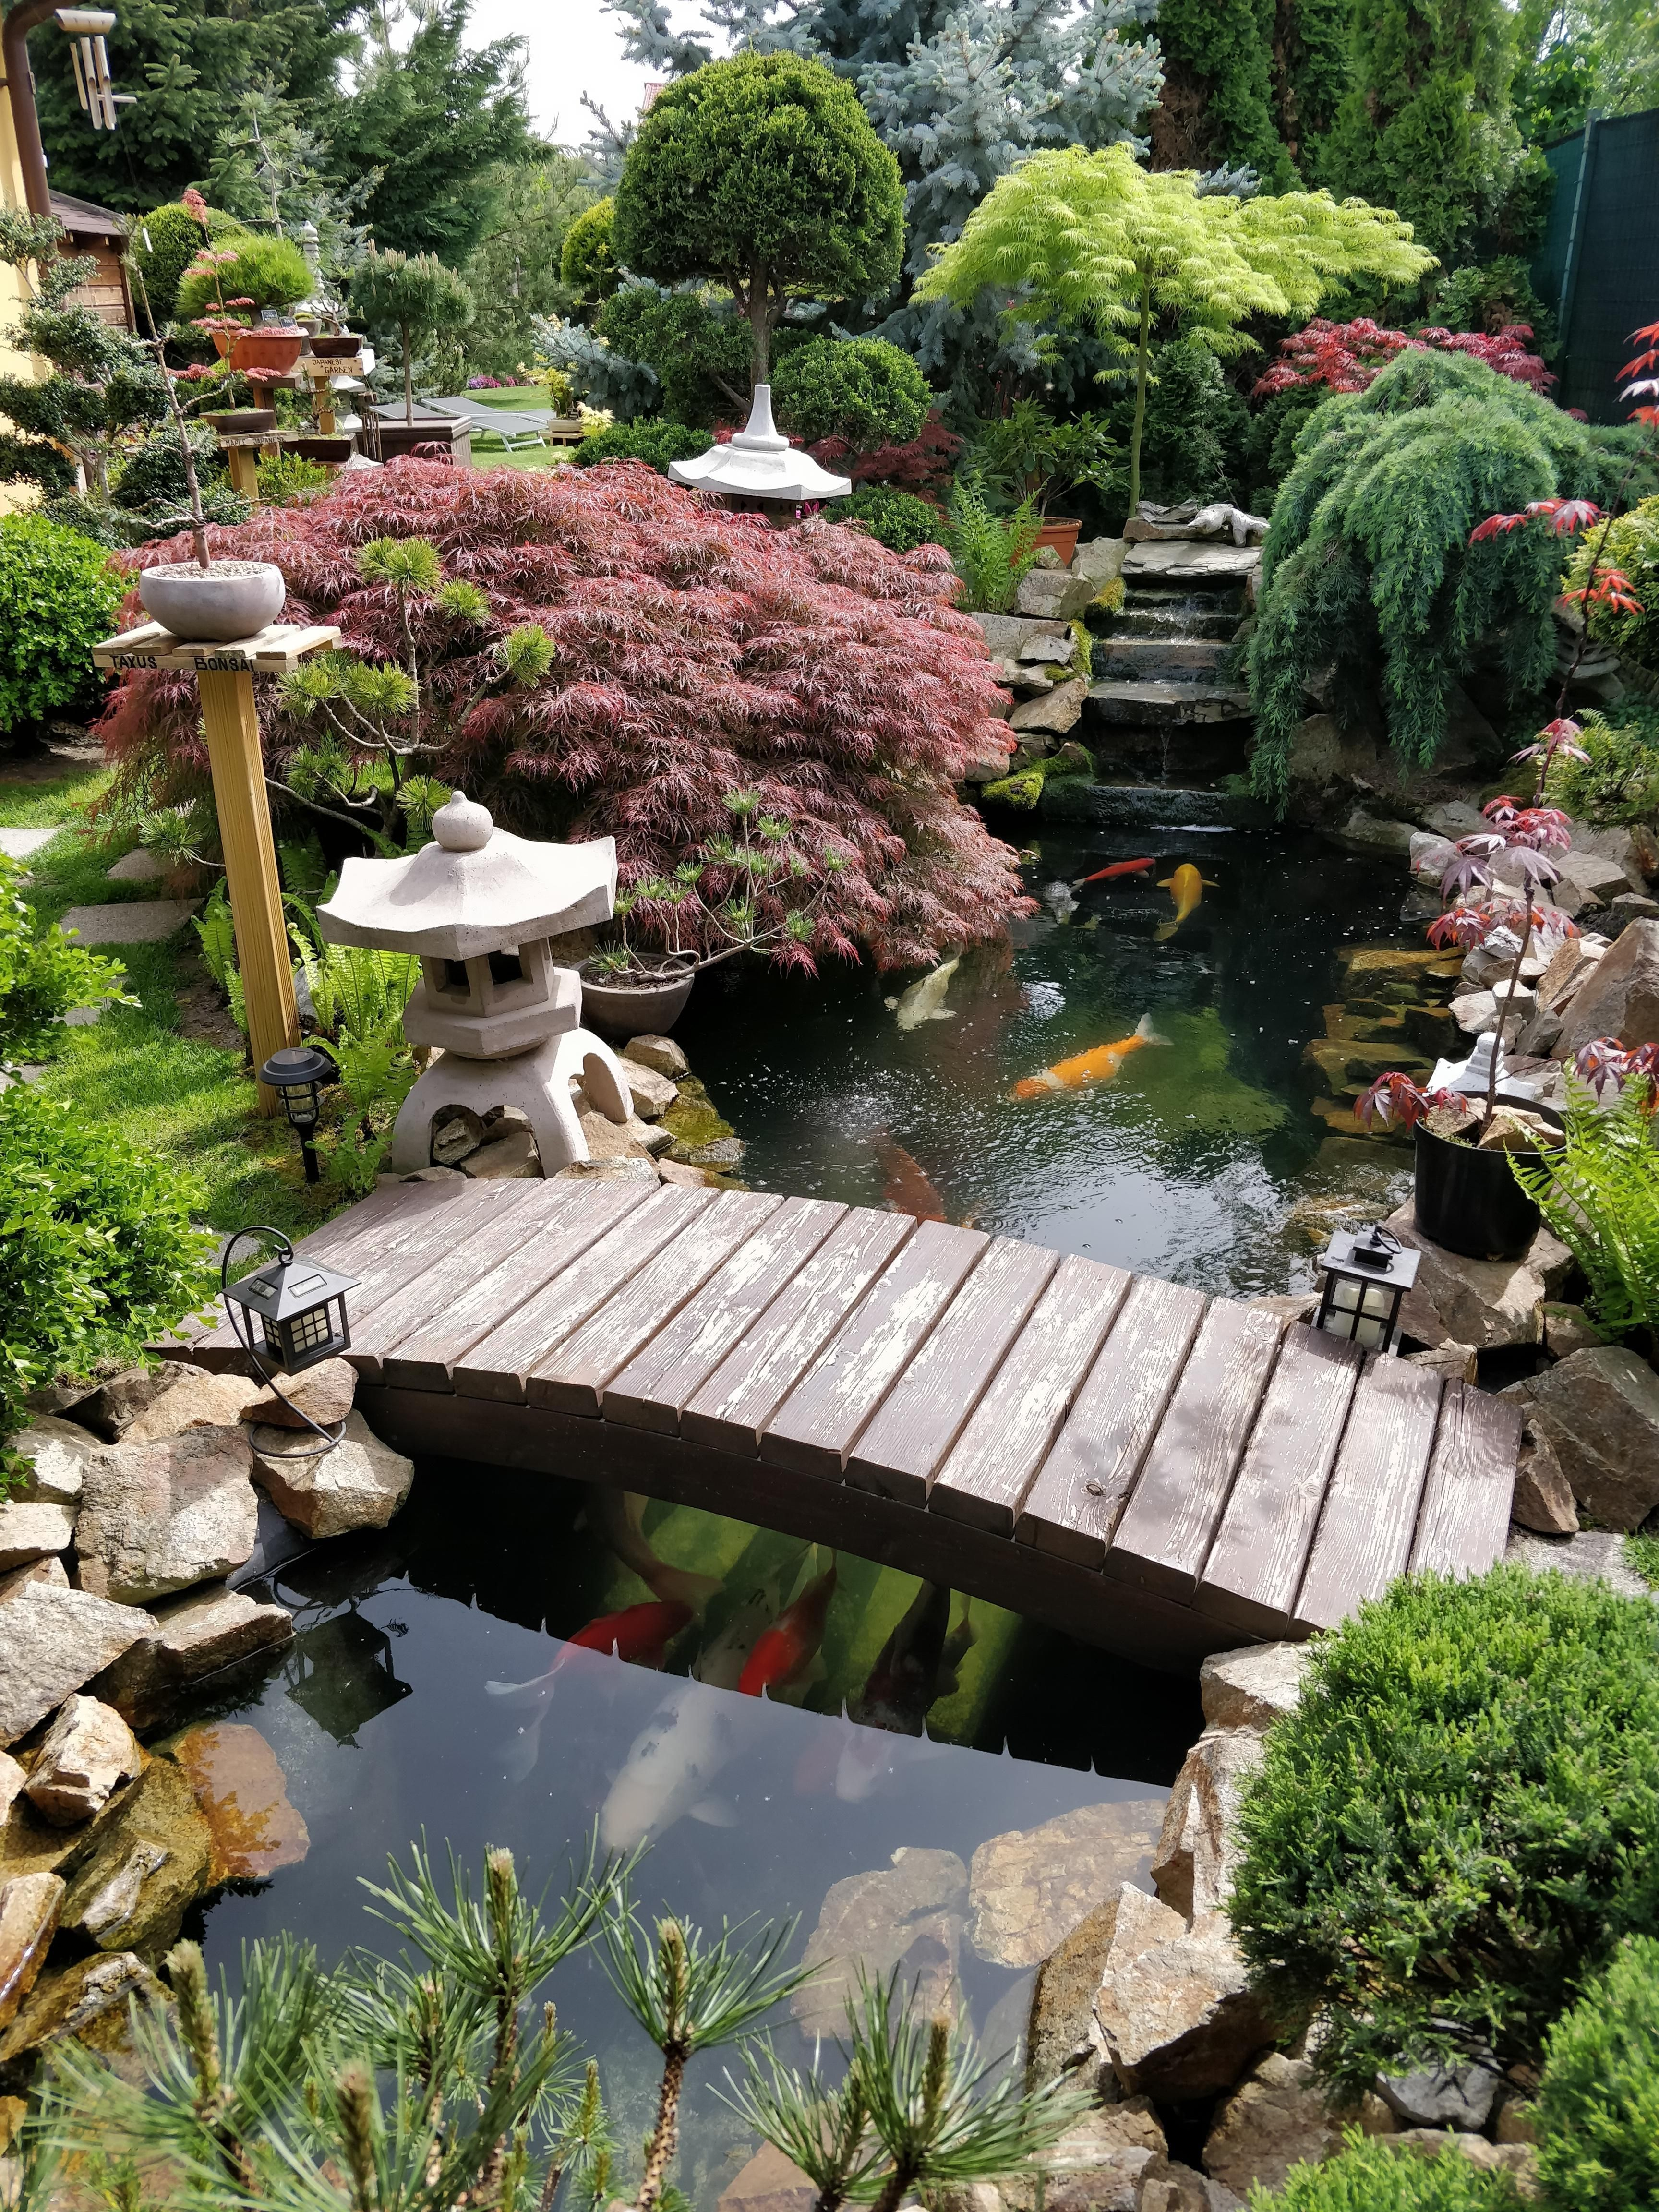 I M Back With Another Photo Of My Dad S Japanese Garden On The First Sunny Day Of 2019 Gardening In 2020 Garden Pond Design Japanese Garden Design Ponds Backyard